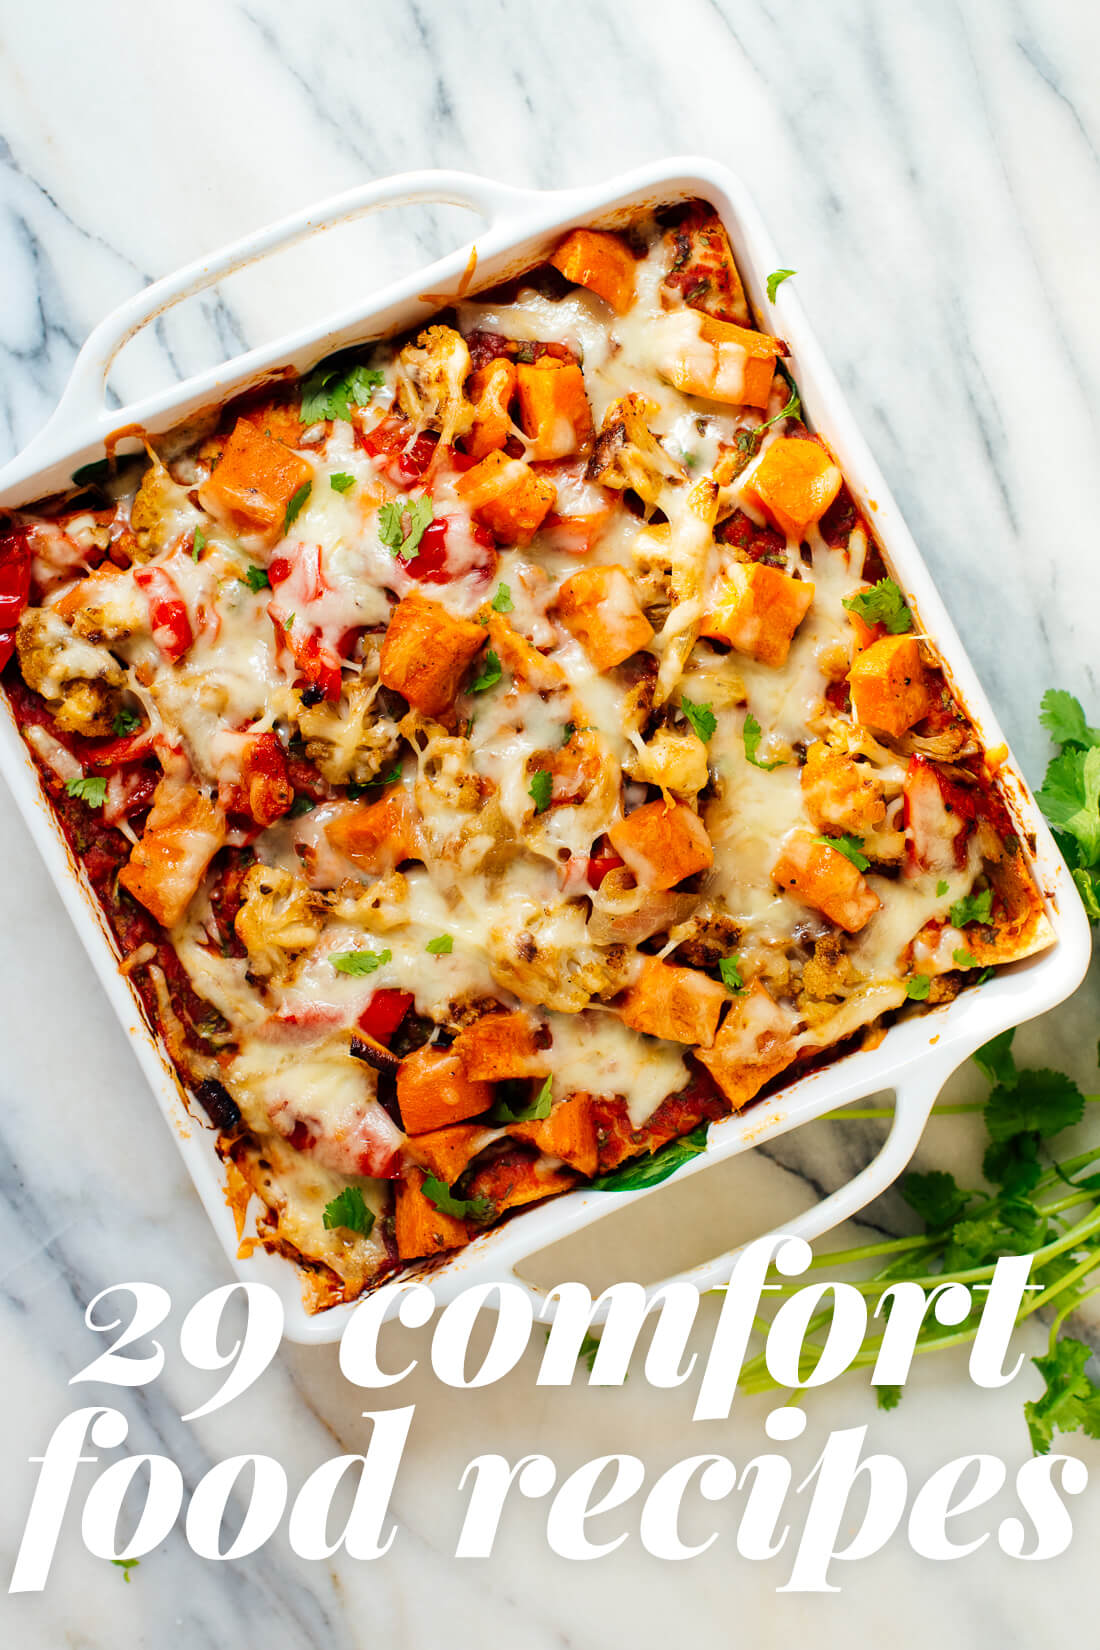 29 Healthy Comfort Food Recipes